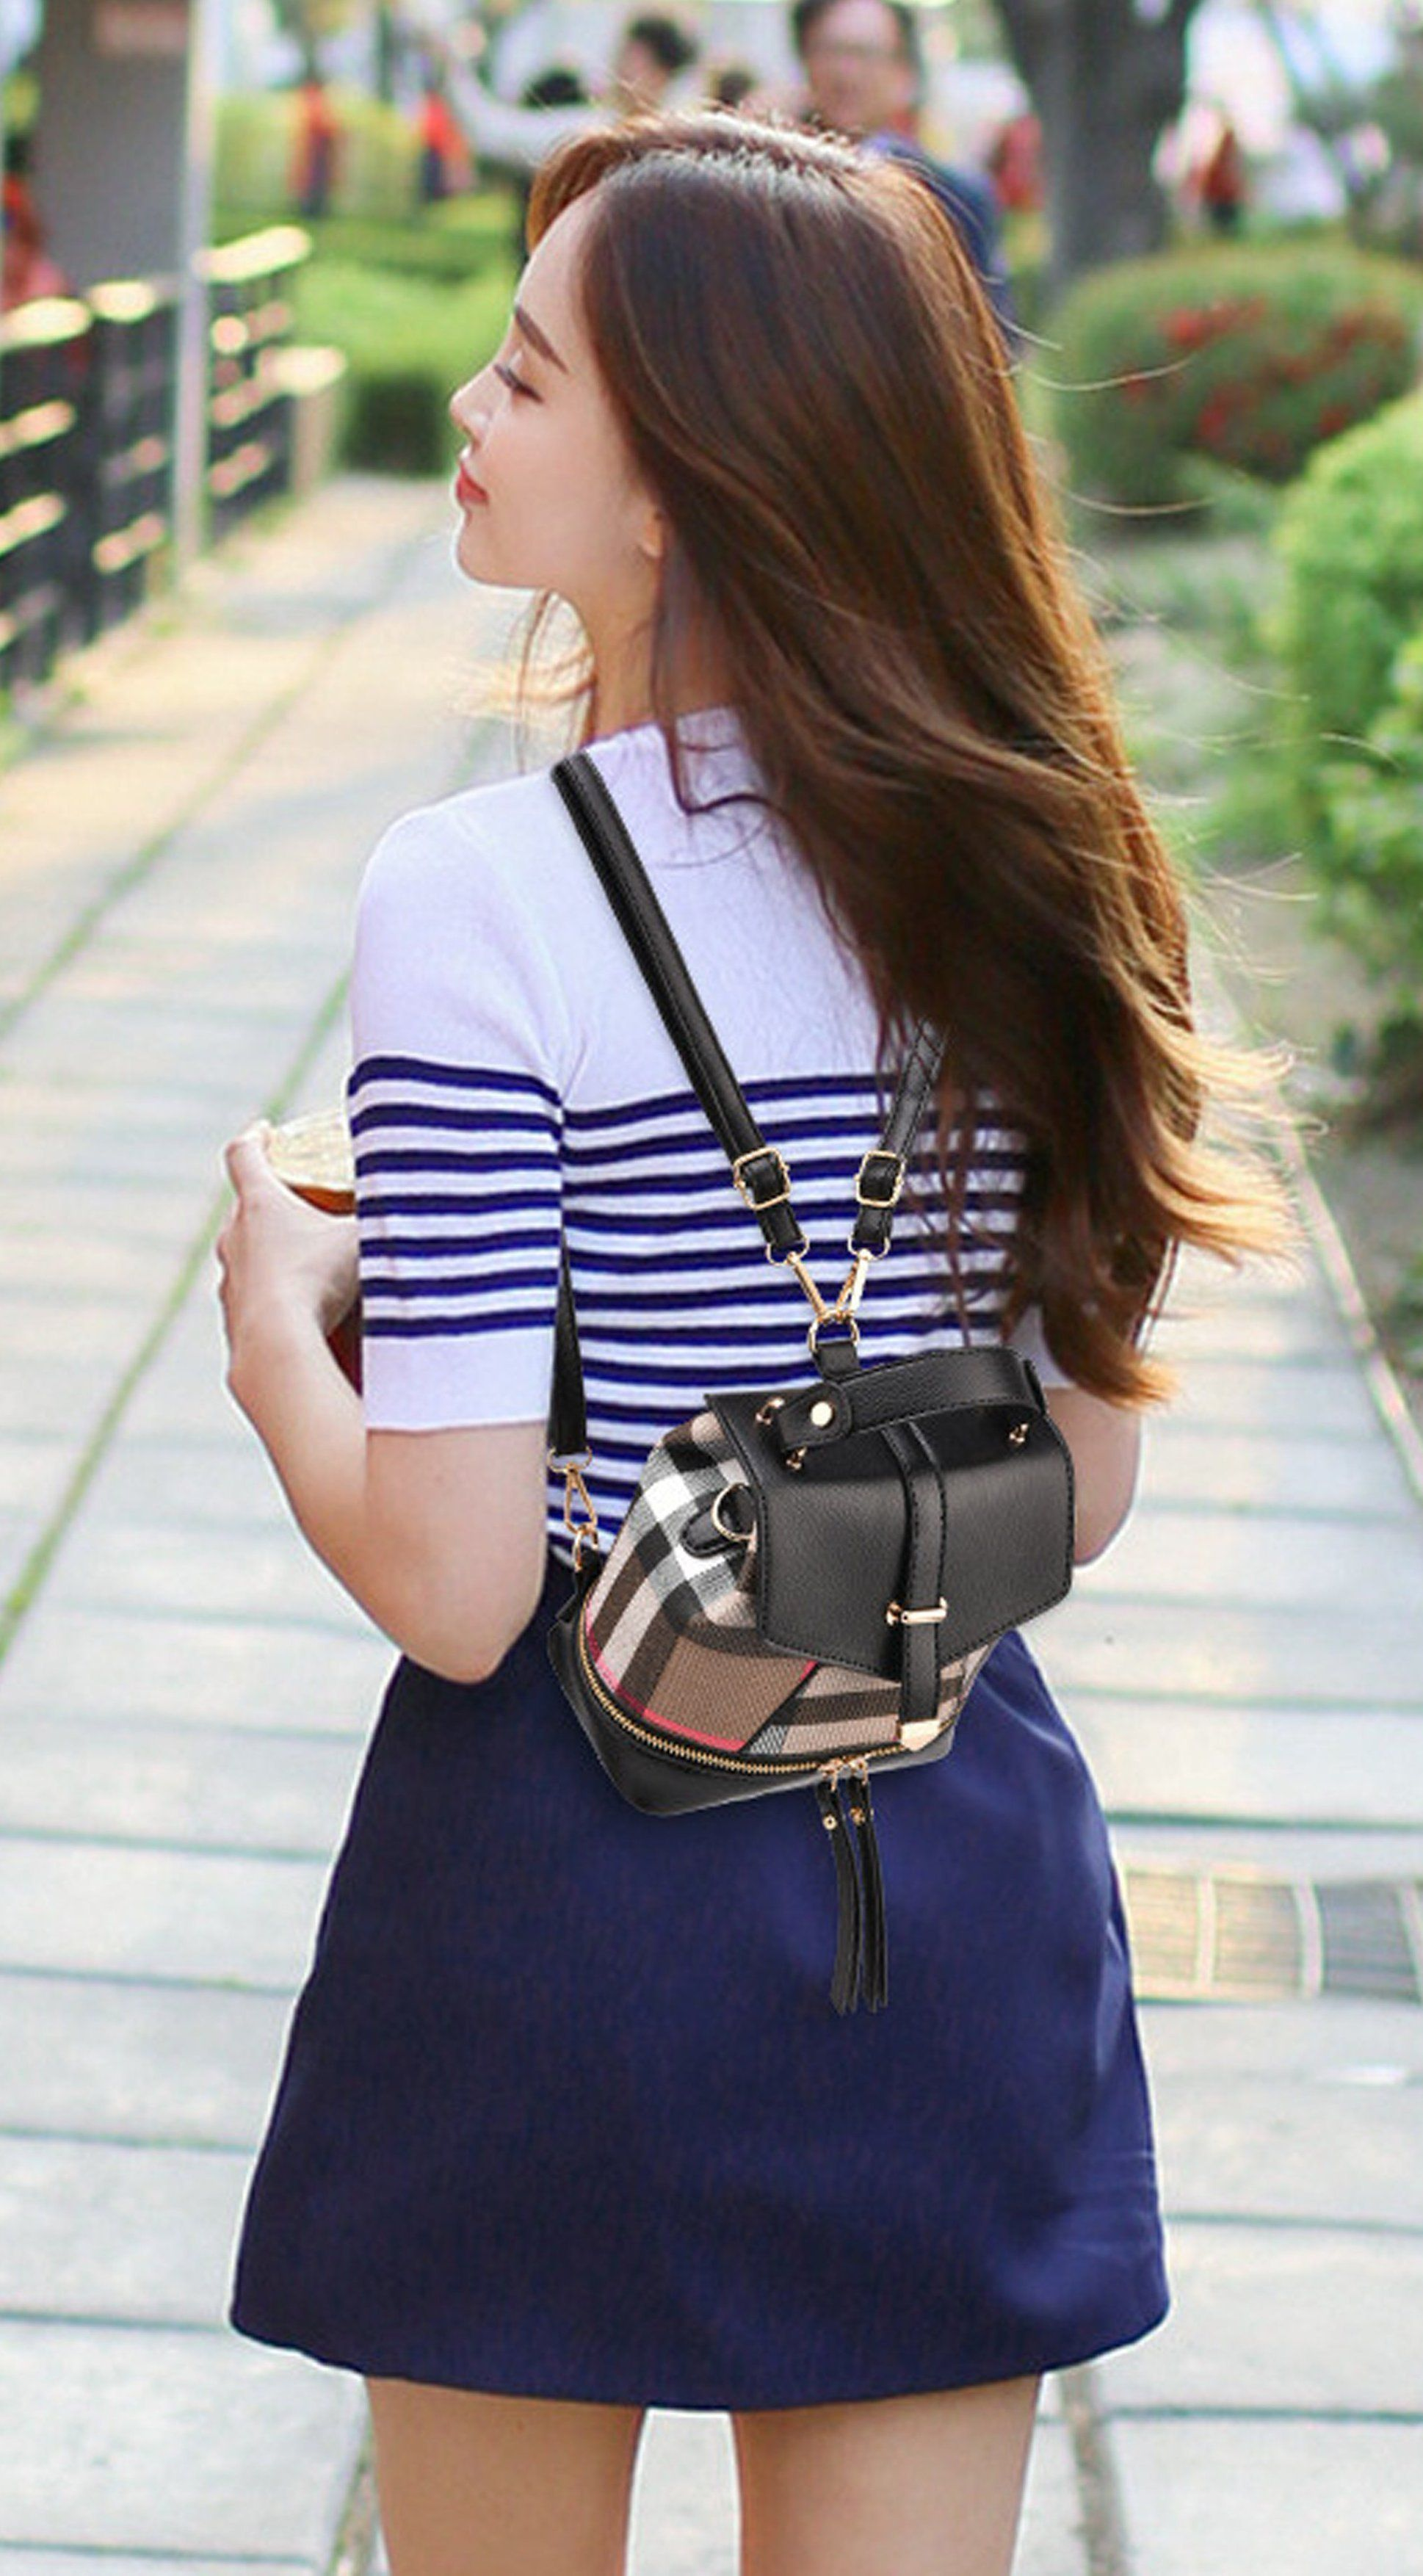 Cute Summer Outfit Ideas for Teen Girls with Skirt and Mini Backpack in  Plaid - Ideas lindas del equipo del verano para las muchachas adolescentes  - www. 1eb7f2dfe345b